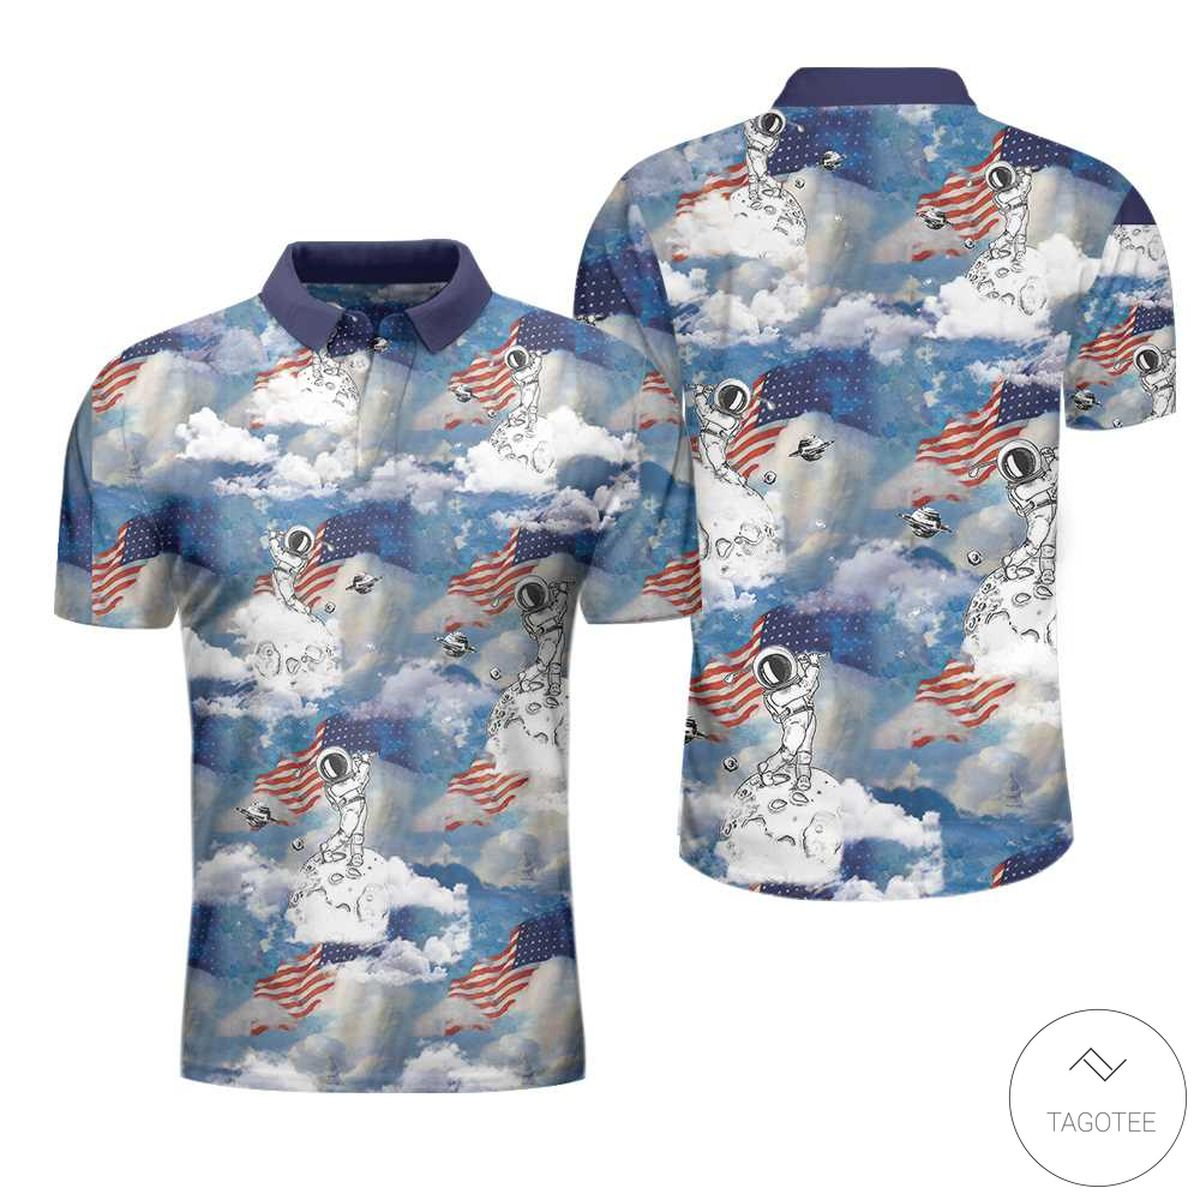 Astronaut Plays Golf In Space American Flag Polo Shirtx